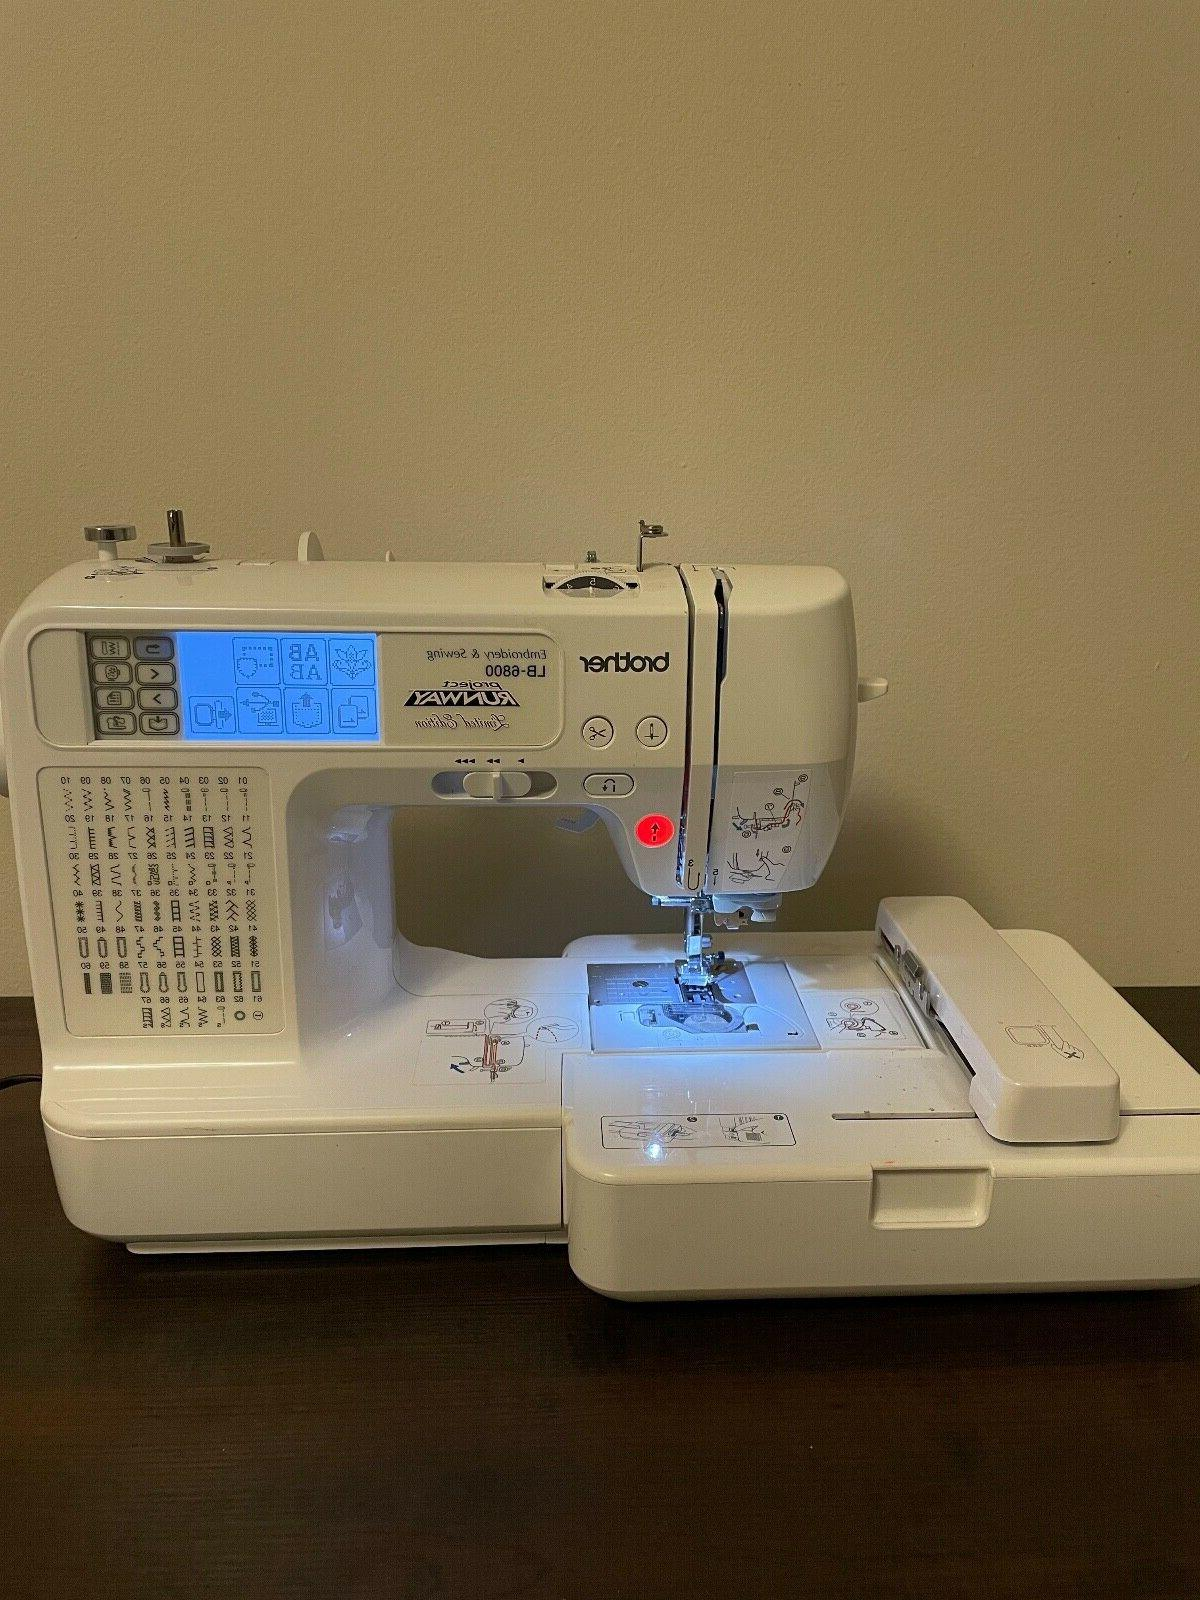 project runway embroidery machine lb 6800